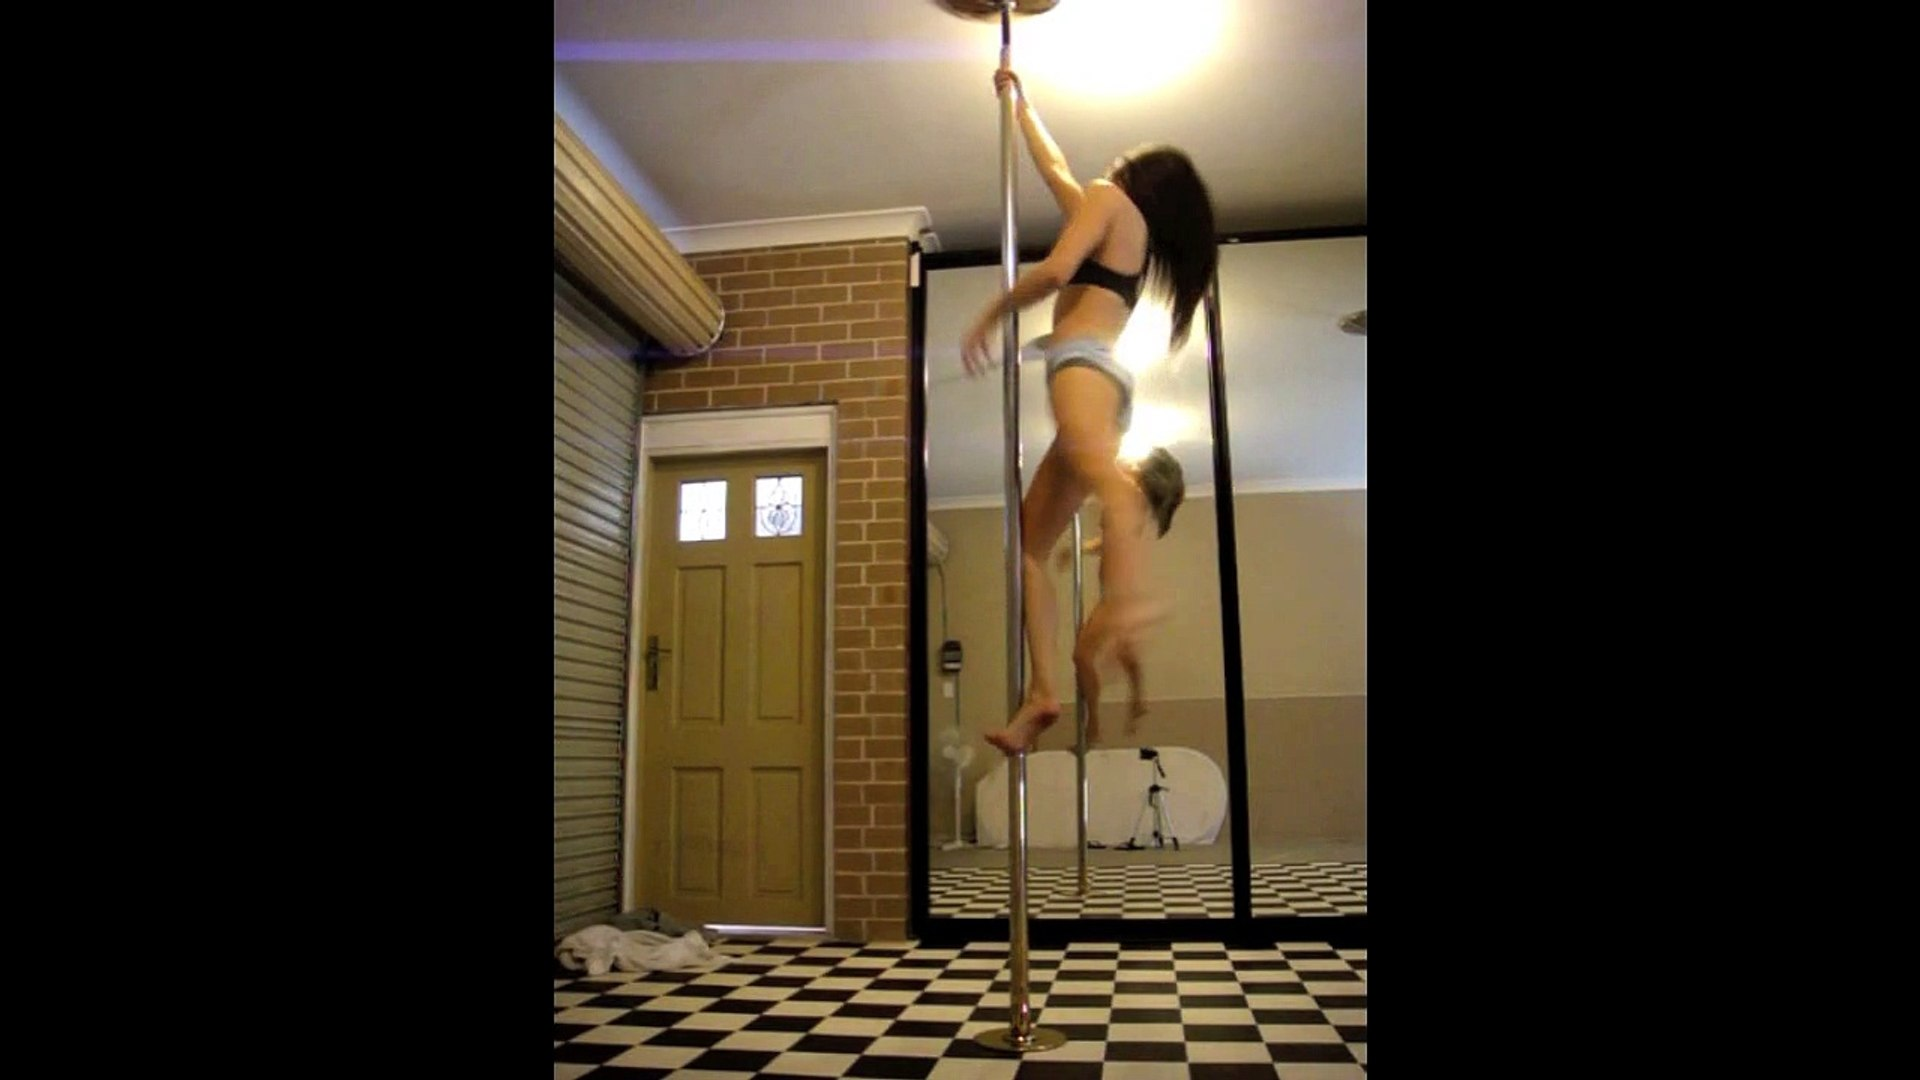 Sexy Pole Dancing -Vid 13- Pretzel_Ballerina spin on the pole. Pole moves Practice